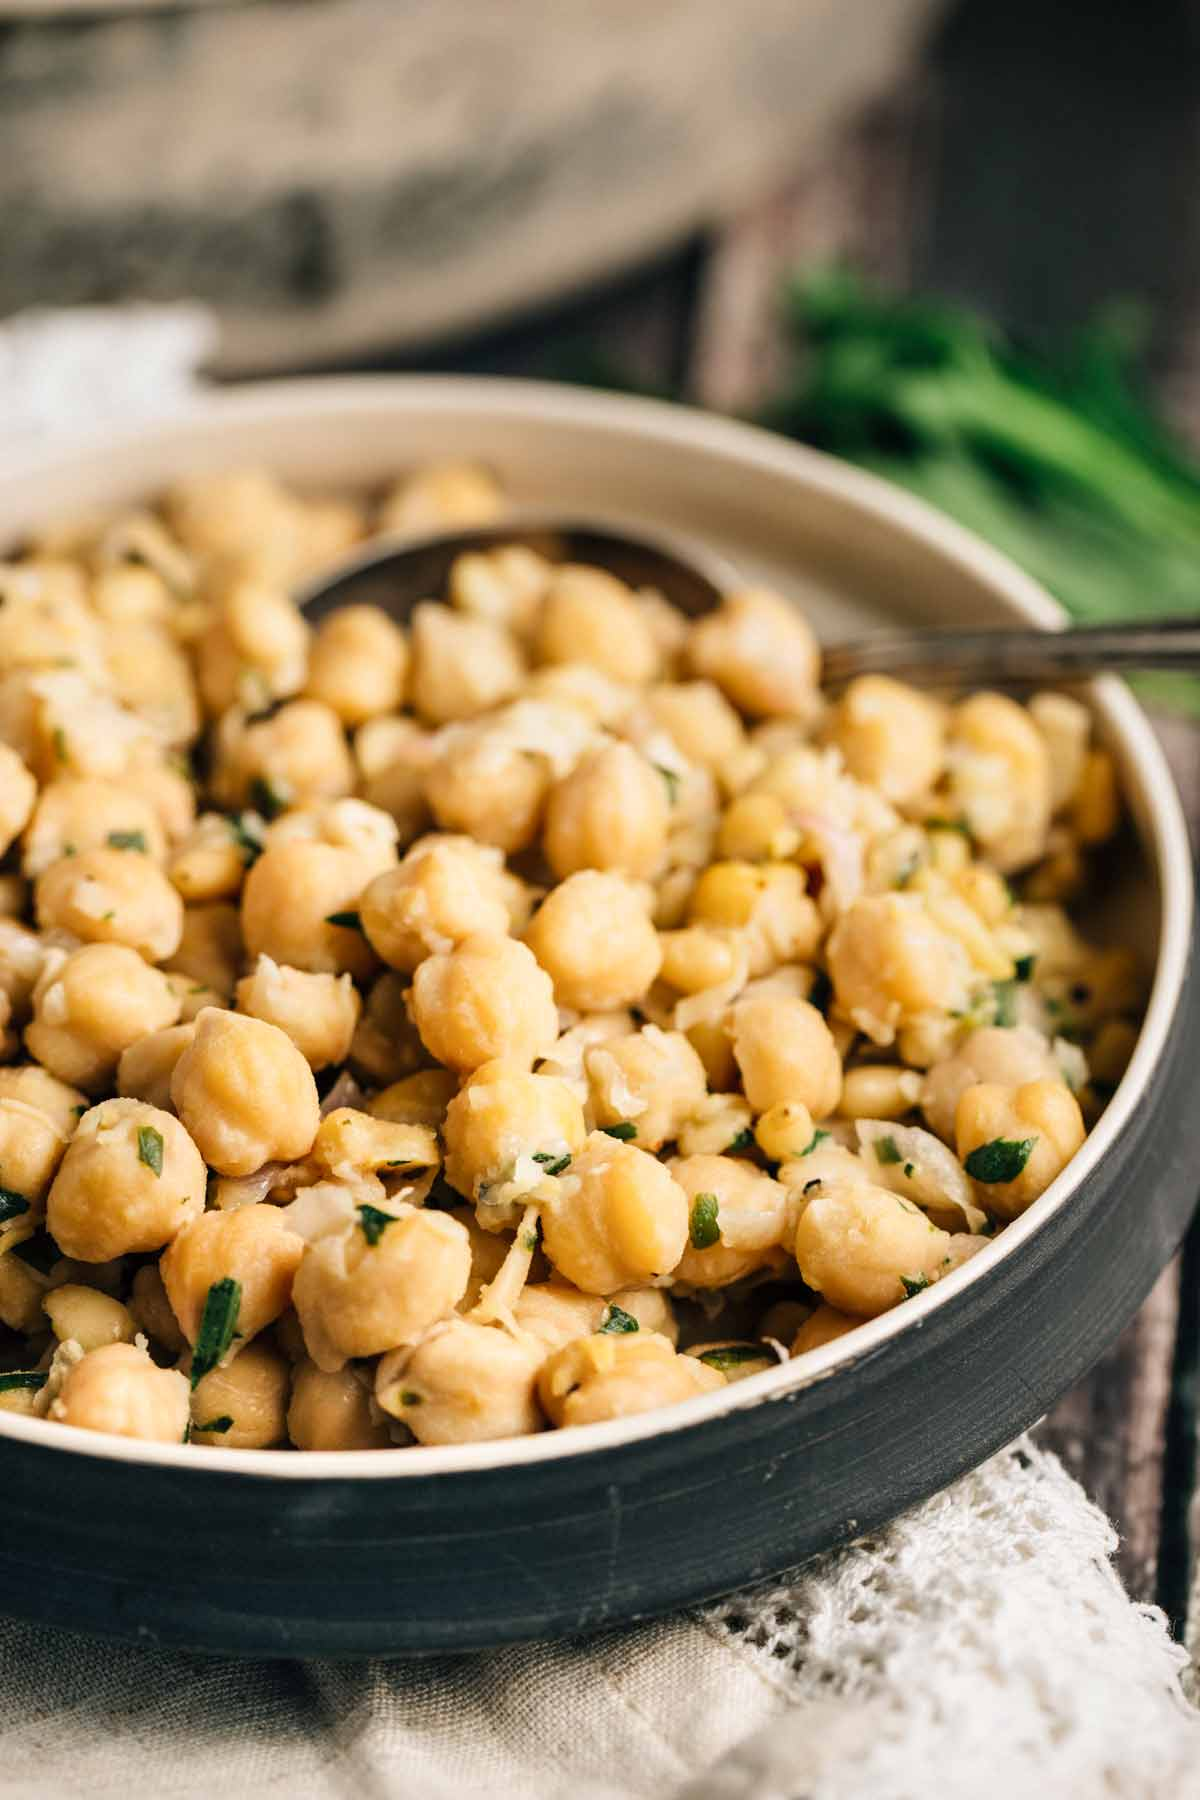 Lemon Chickpeas (Vegan, Gluten Free)